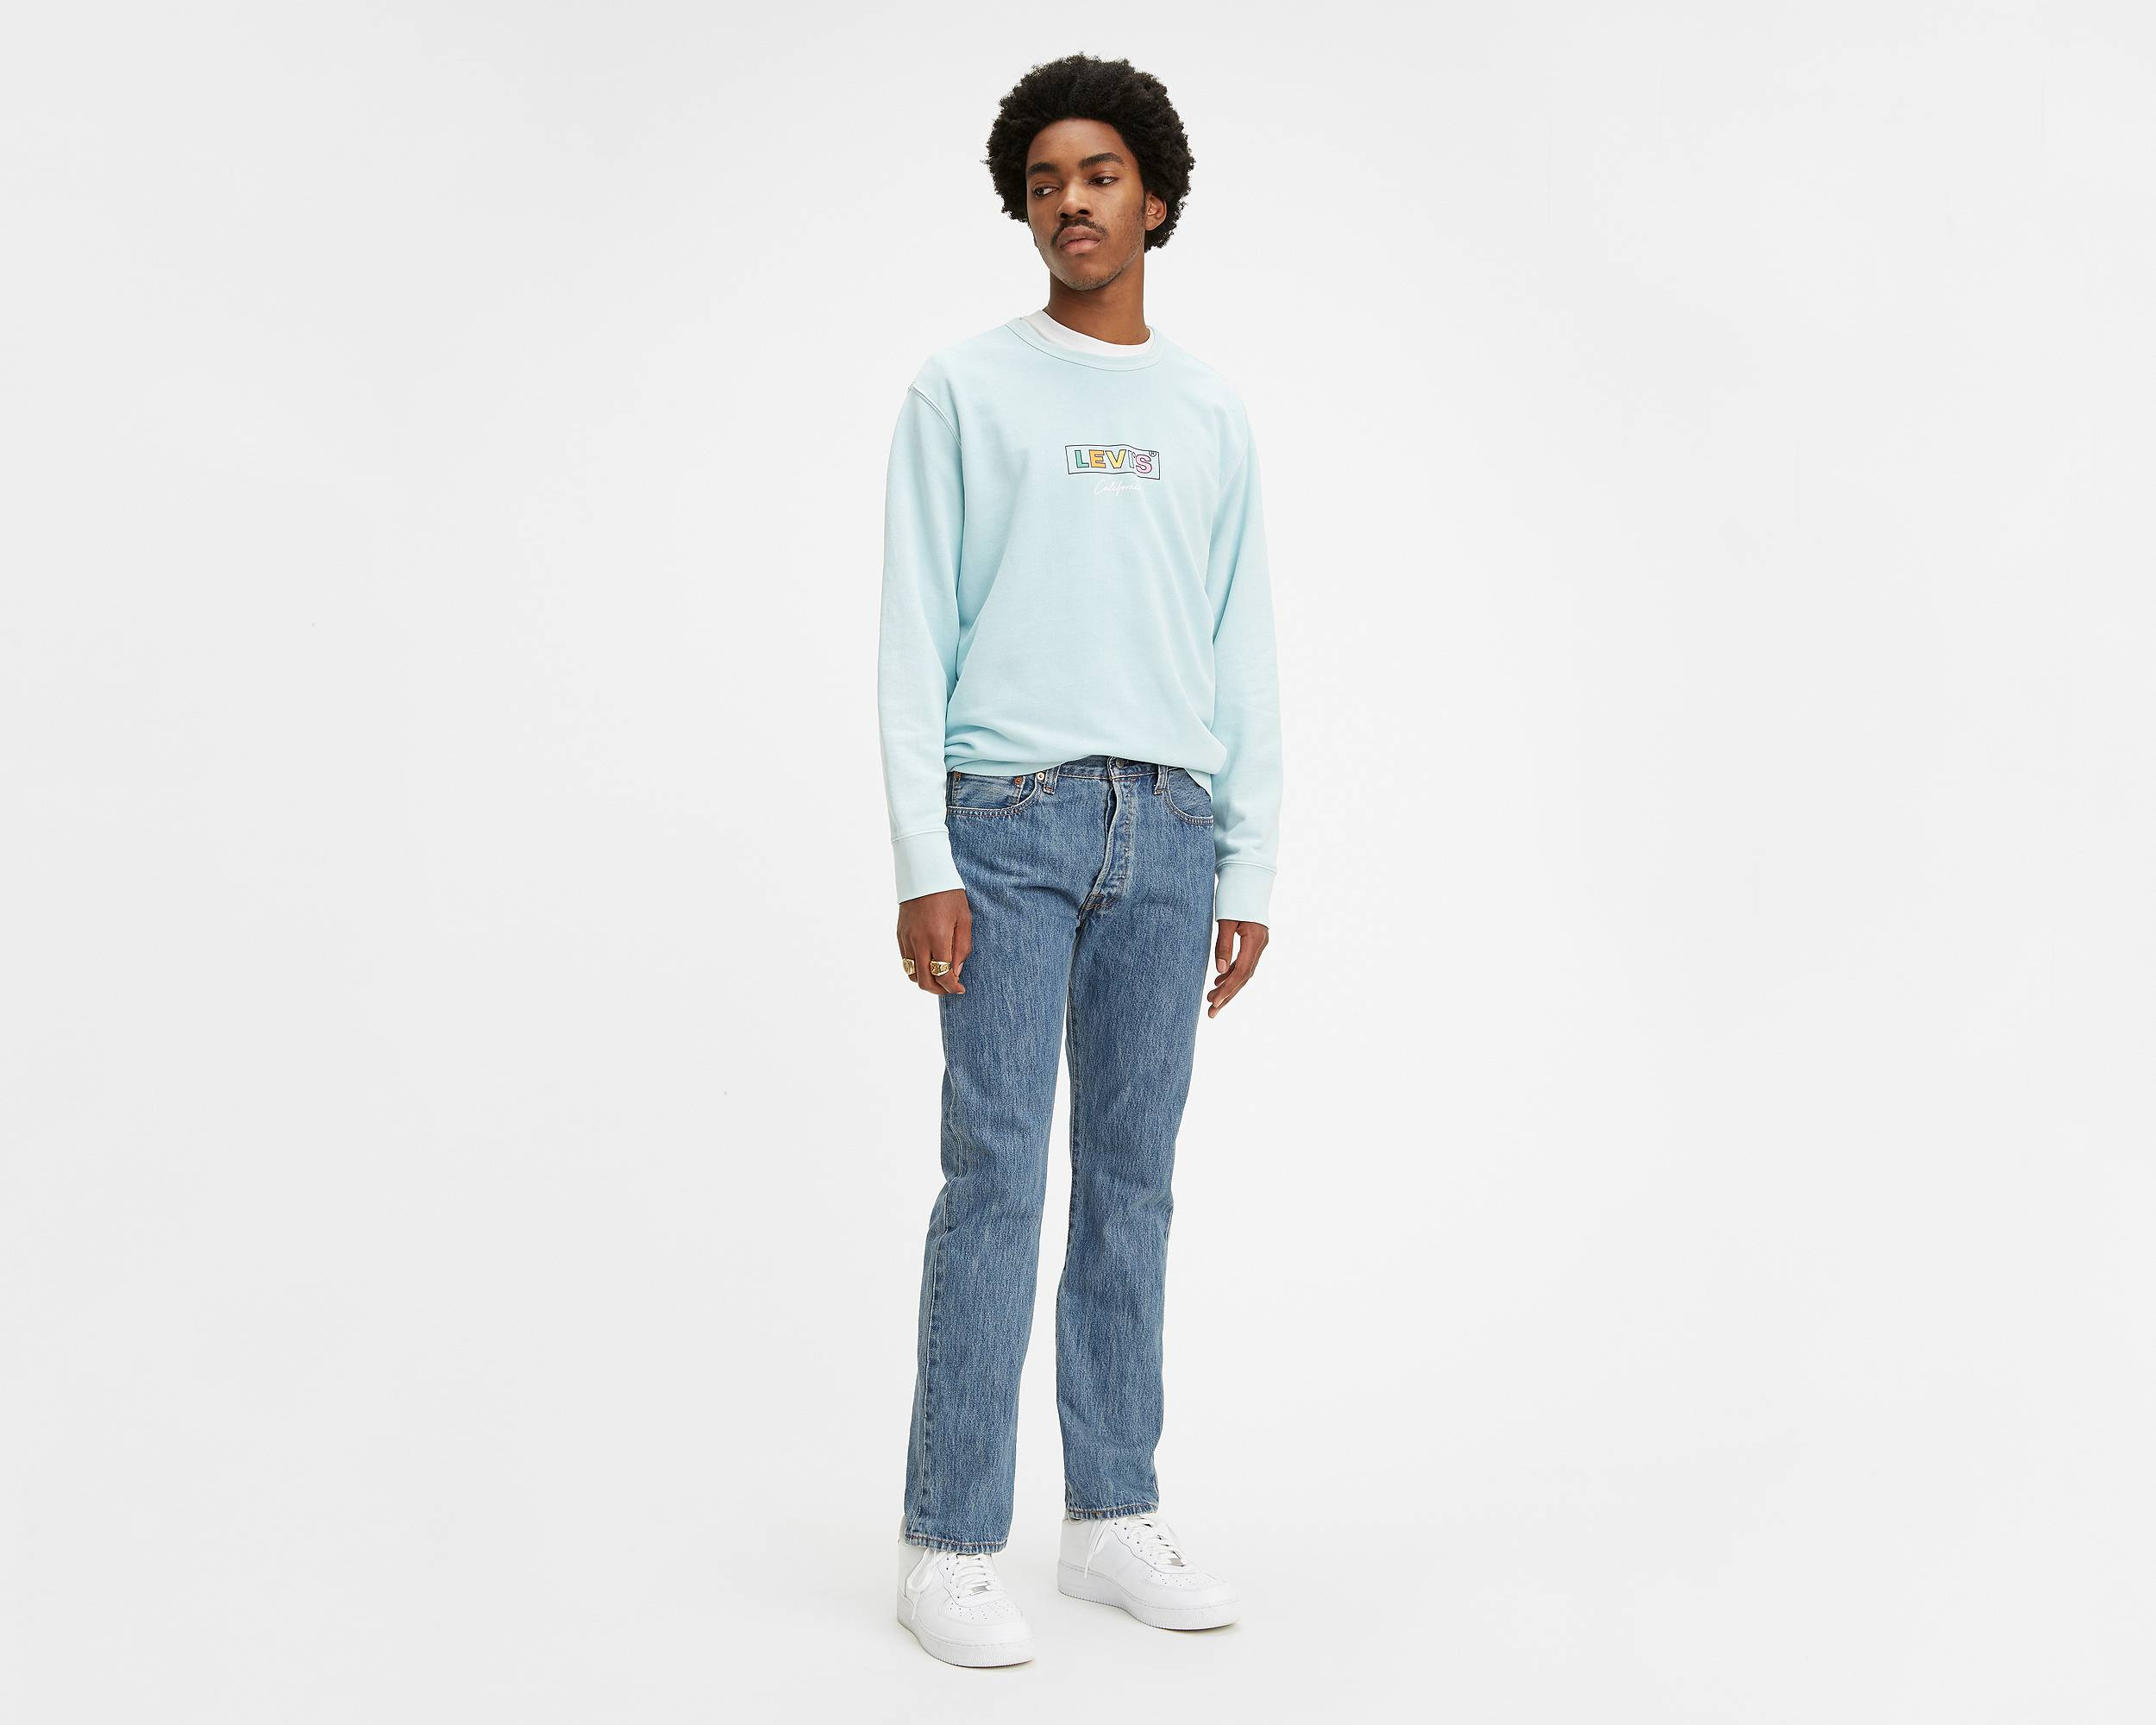 Levi Light Blue Jeans Mens Fashion